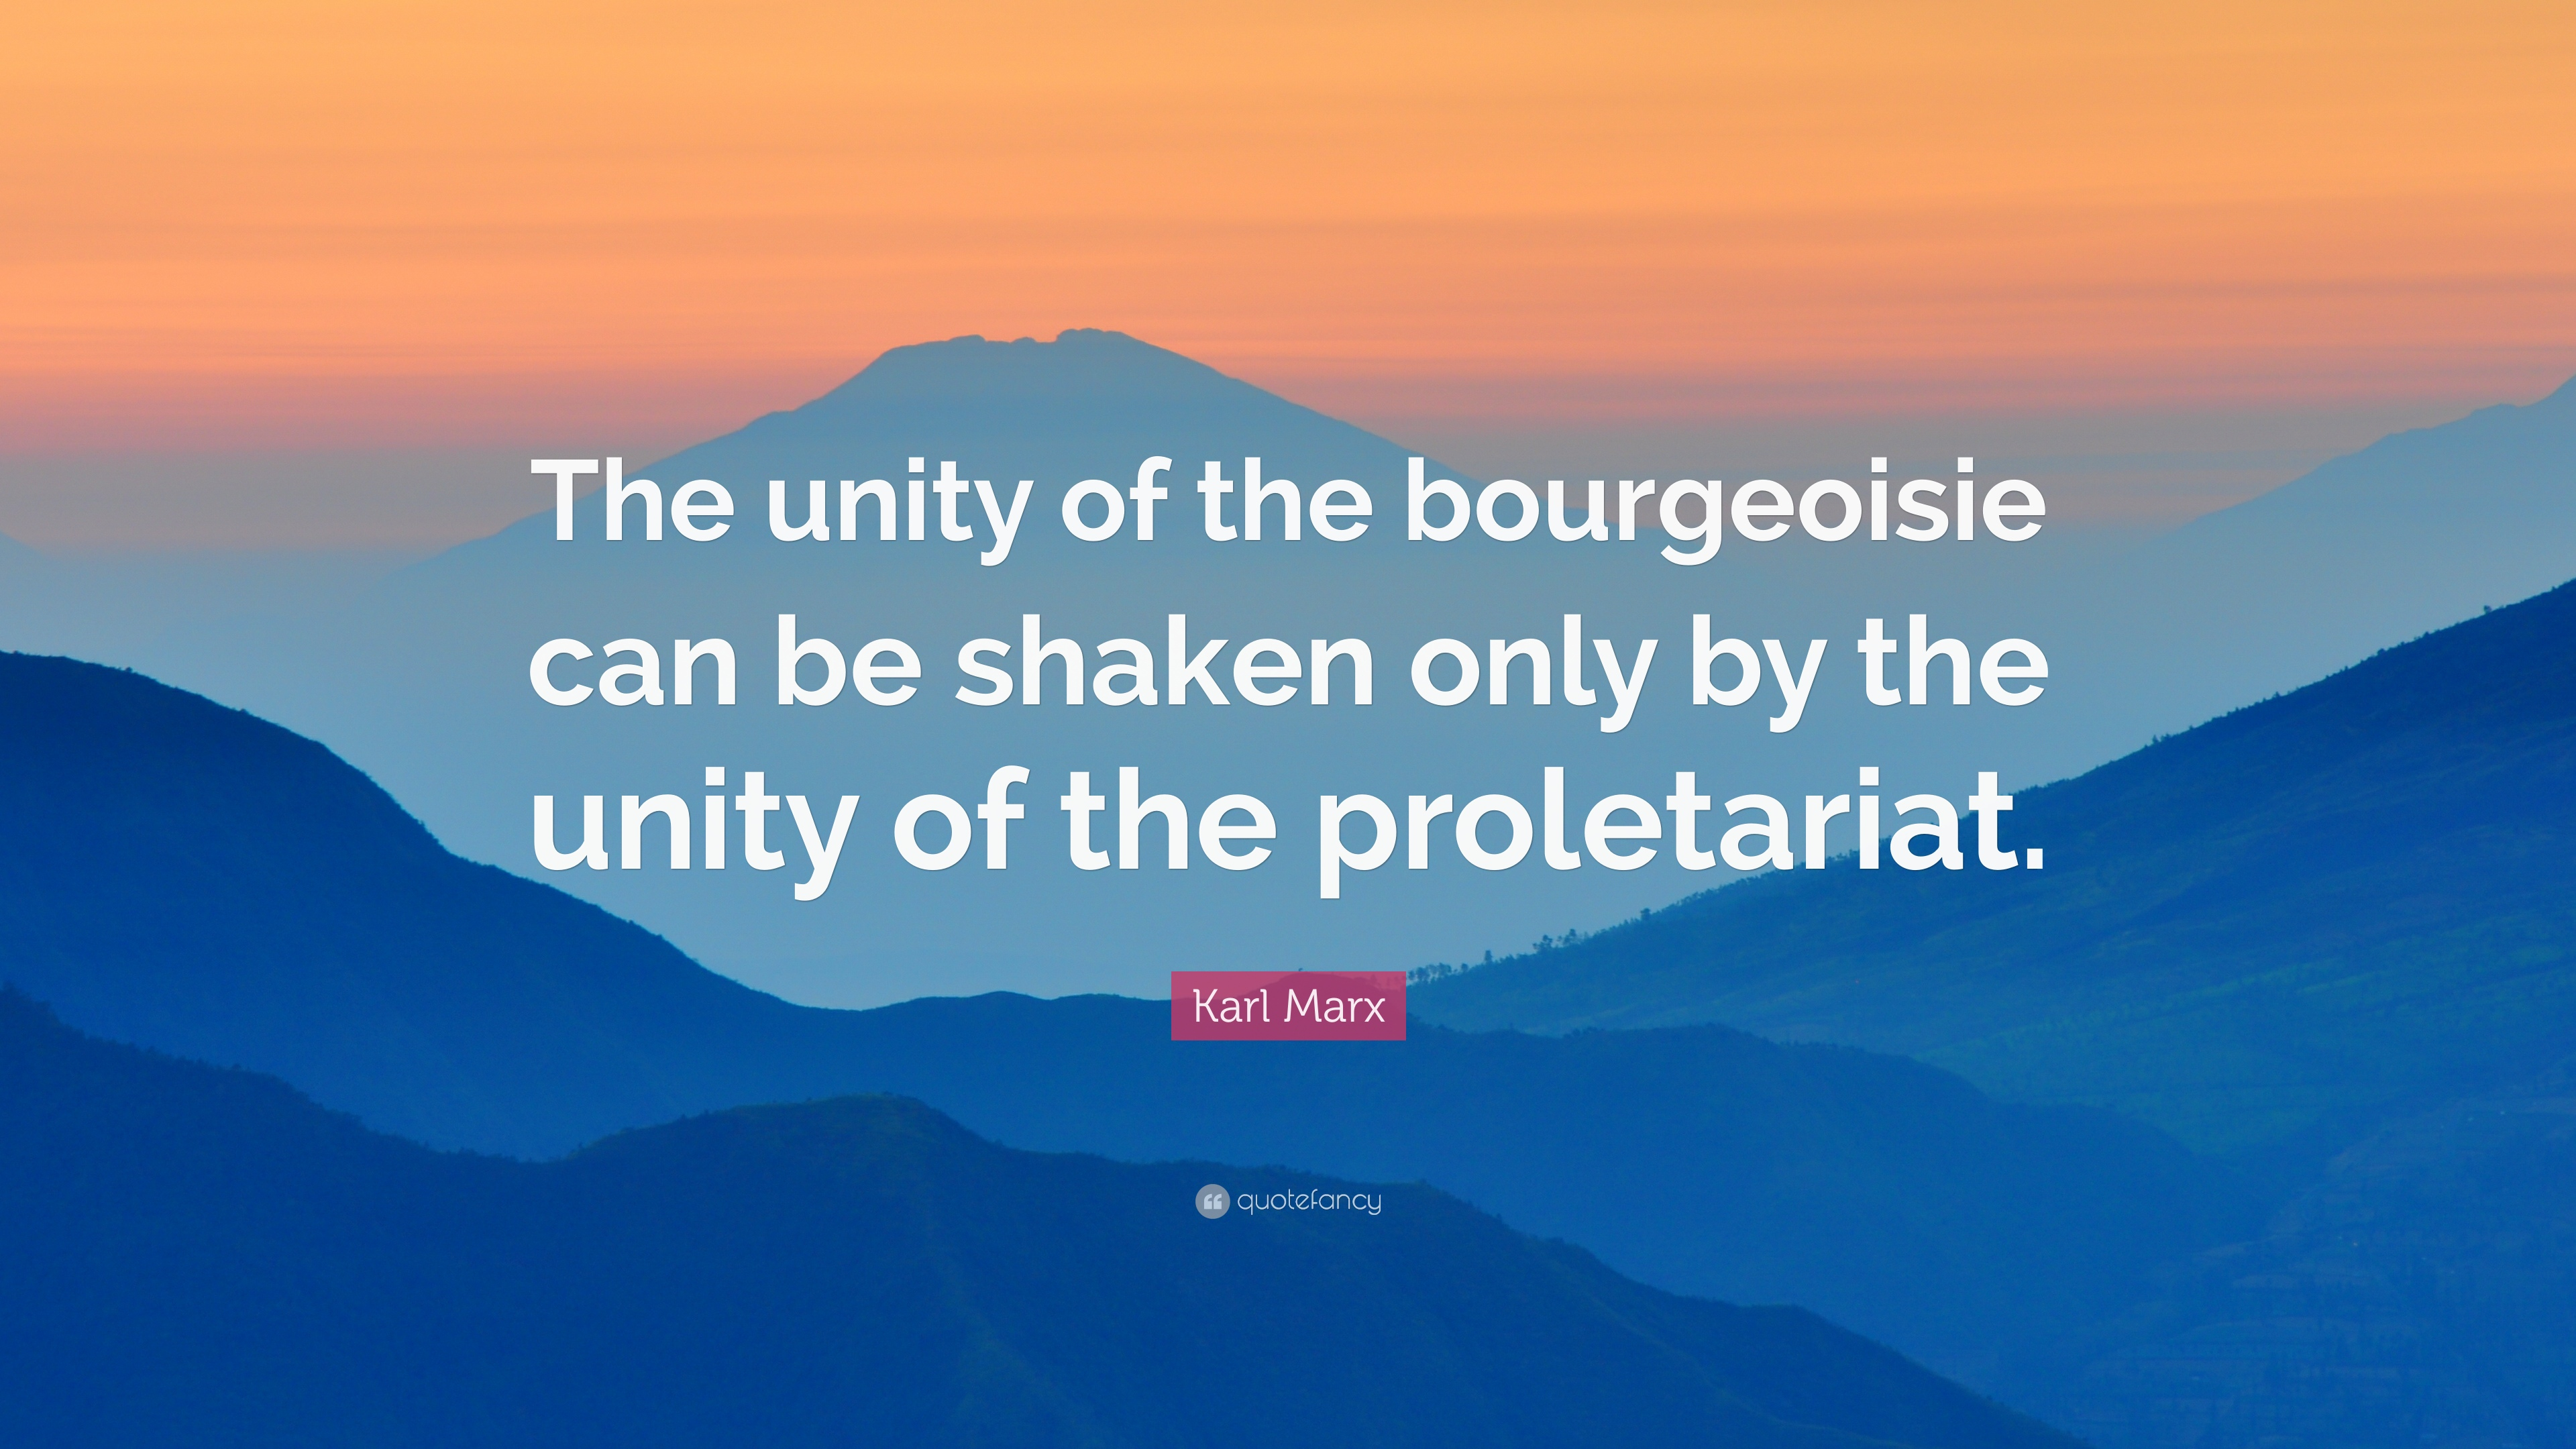 the bourgeoisie essay The bourgeoisie motives for starting the french revolution (2008, april 27) in writeworkcom retrieved 17:20, july 29, 2018, from  .